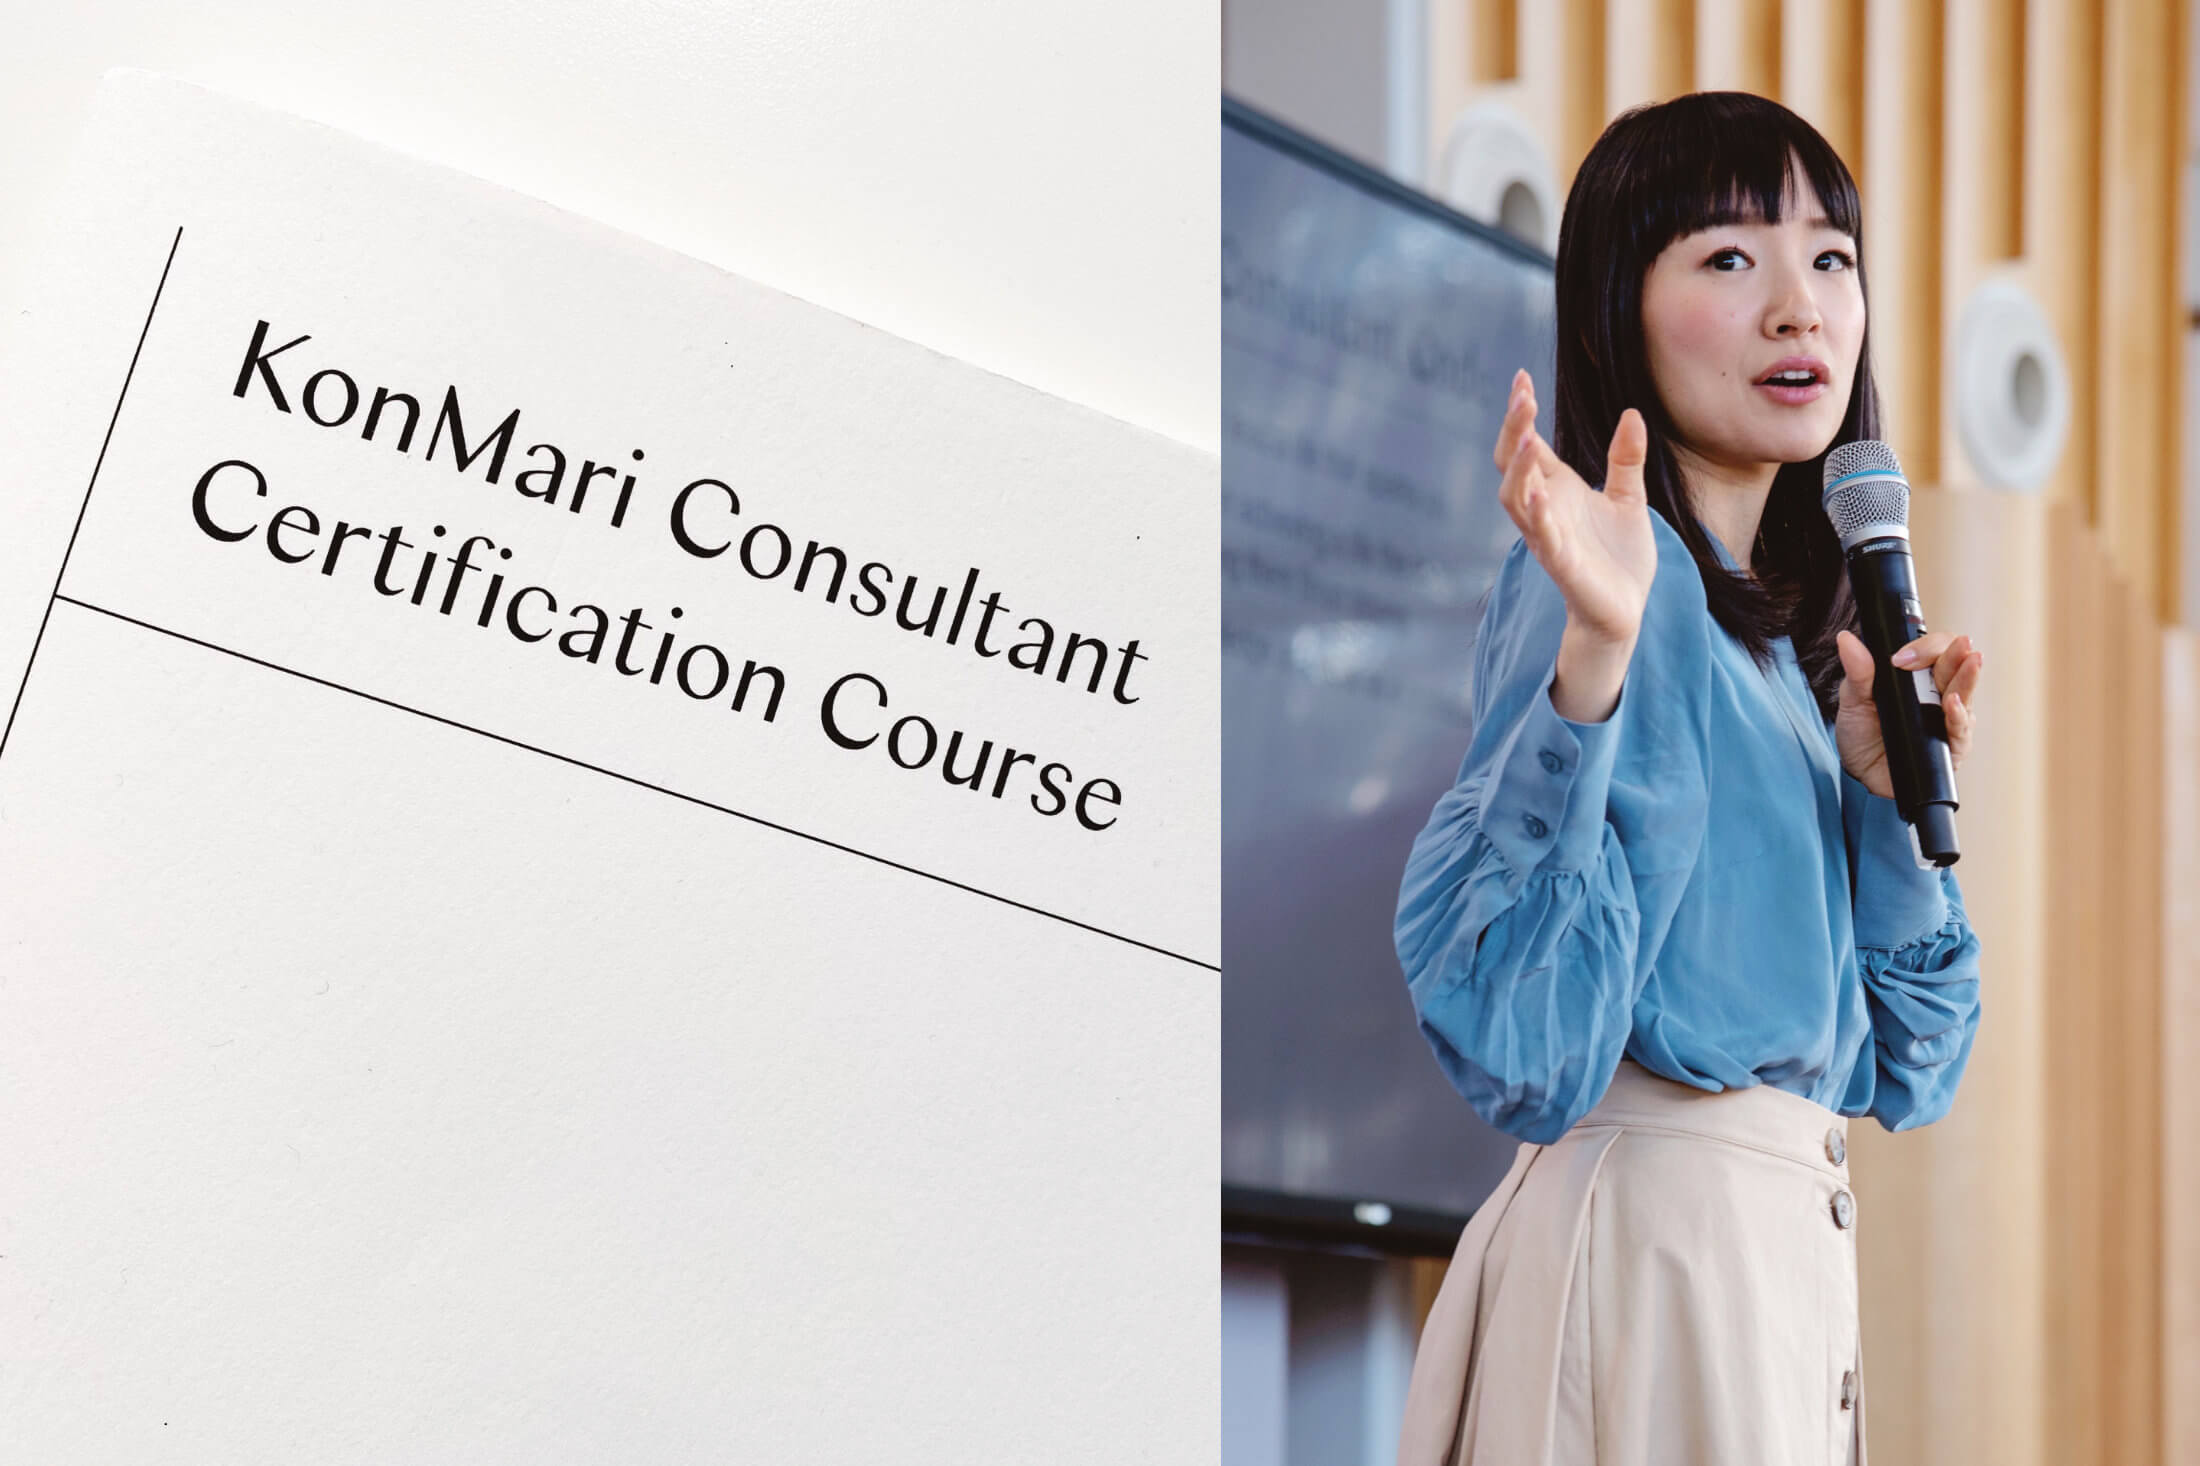 Marie Kondo's Welcome Speech During The KonMari Consultant Certification Course in New York, November 2019